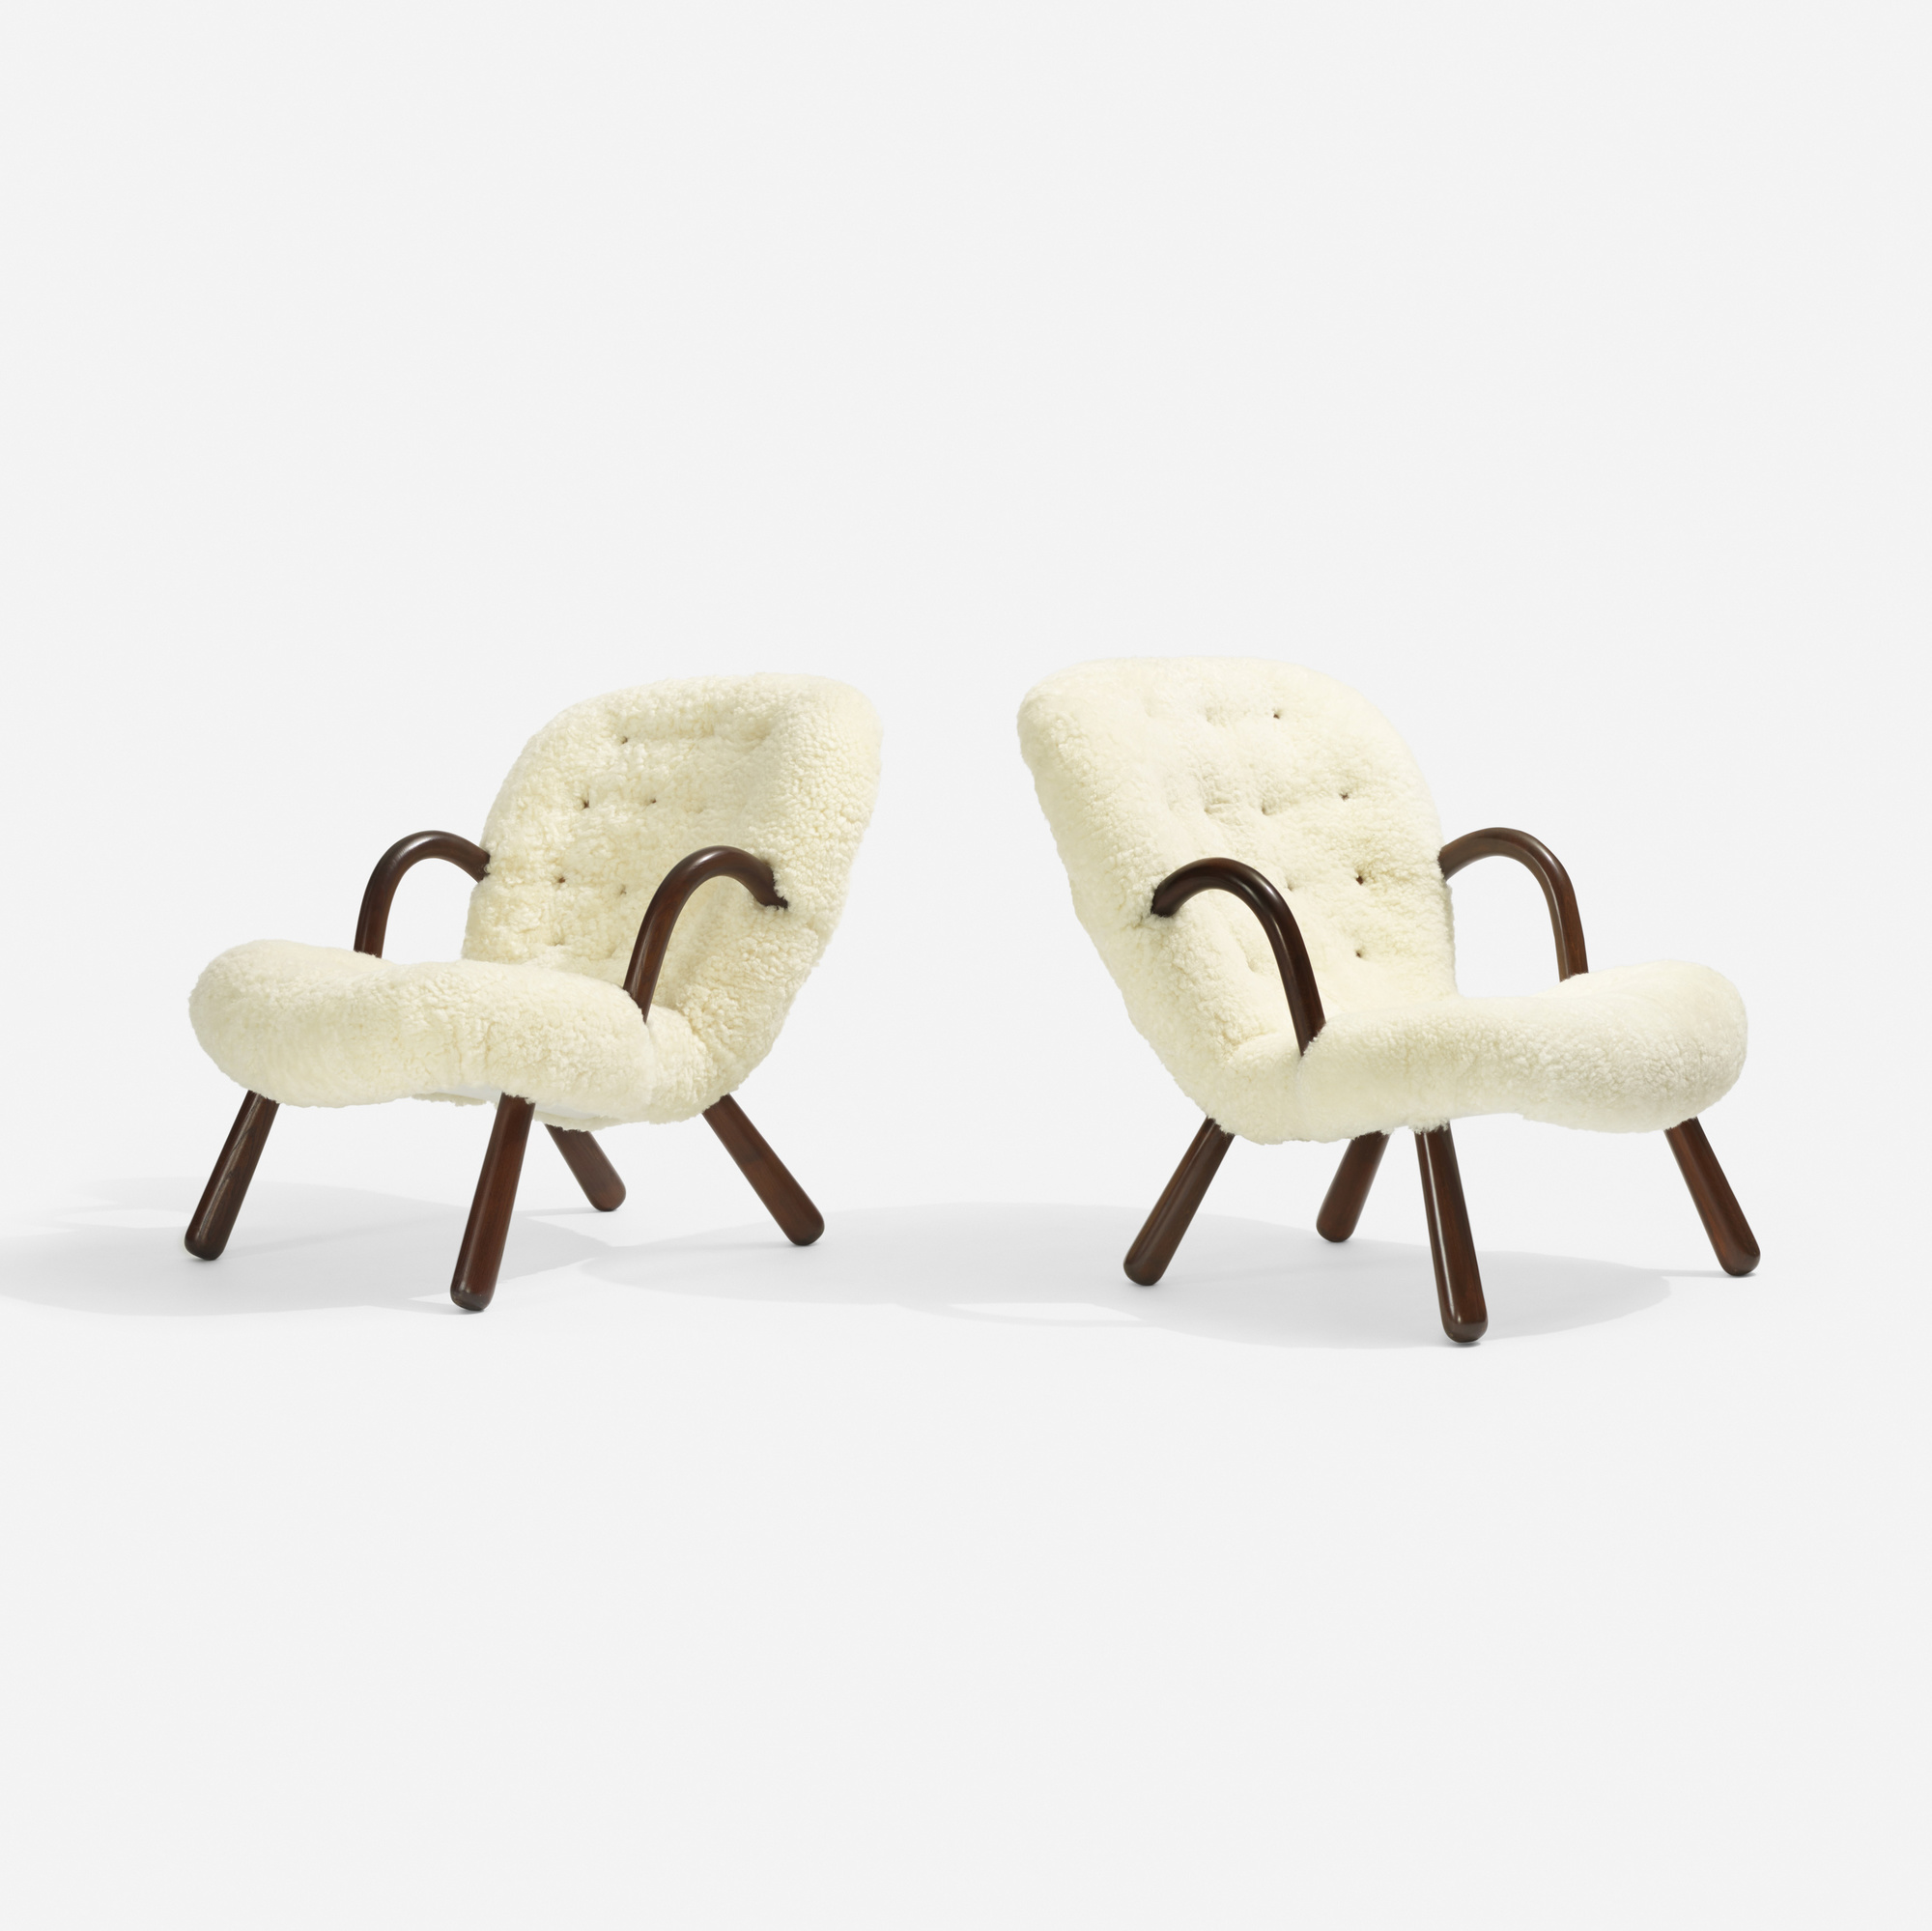 308: Philip Arctander / lounge chairs, pair (1 of 3)